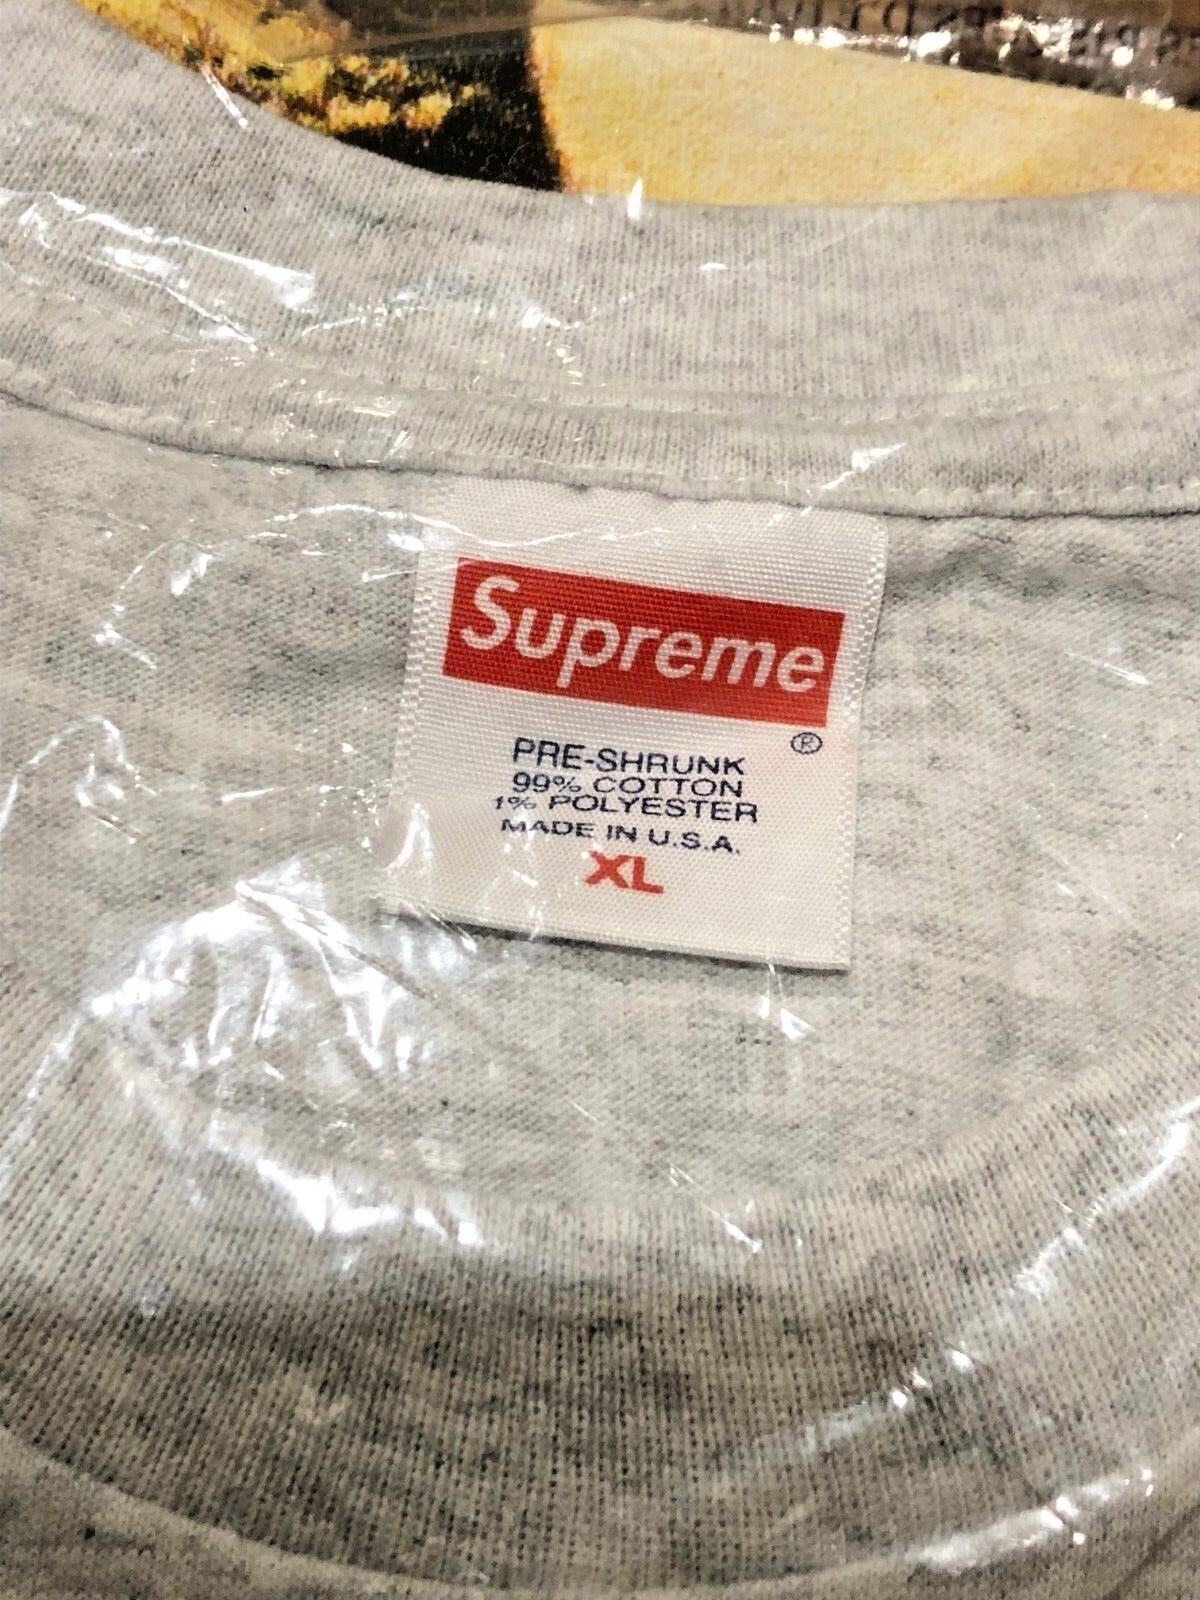 SUPREME grigio FW18 STILL LIFE TEE ASH grigio SUPREME EXTRA LARGE XL AUTHENTIC NEW IN HAND  568ad8